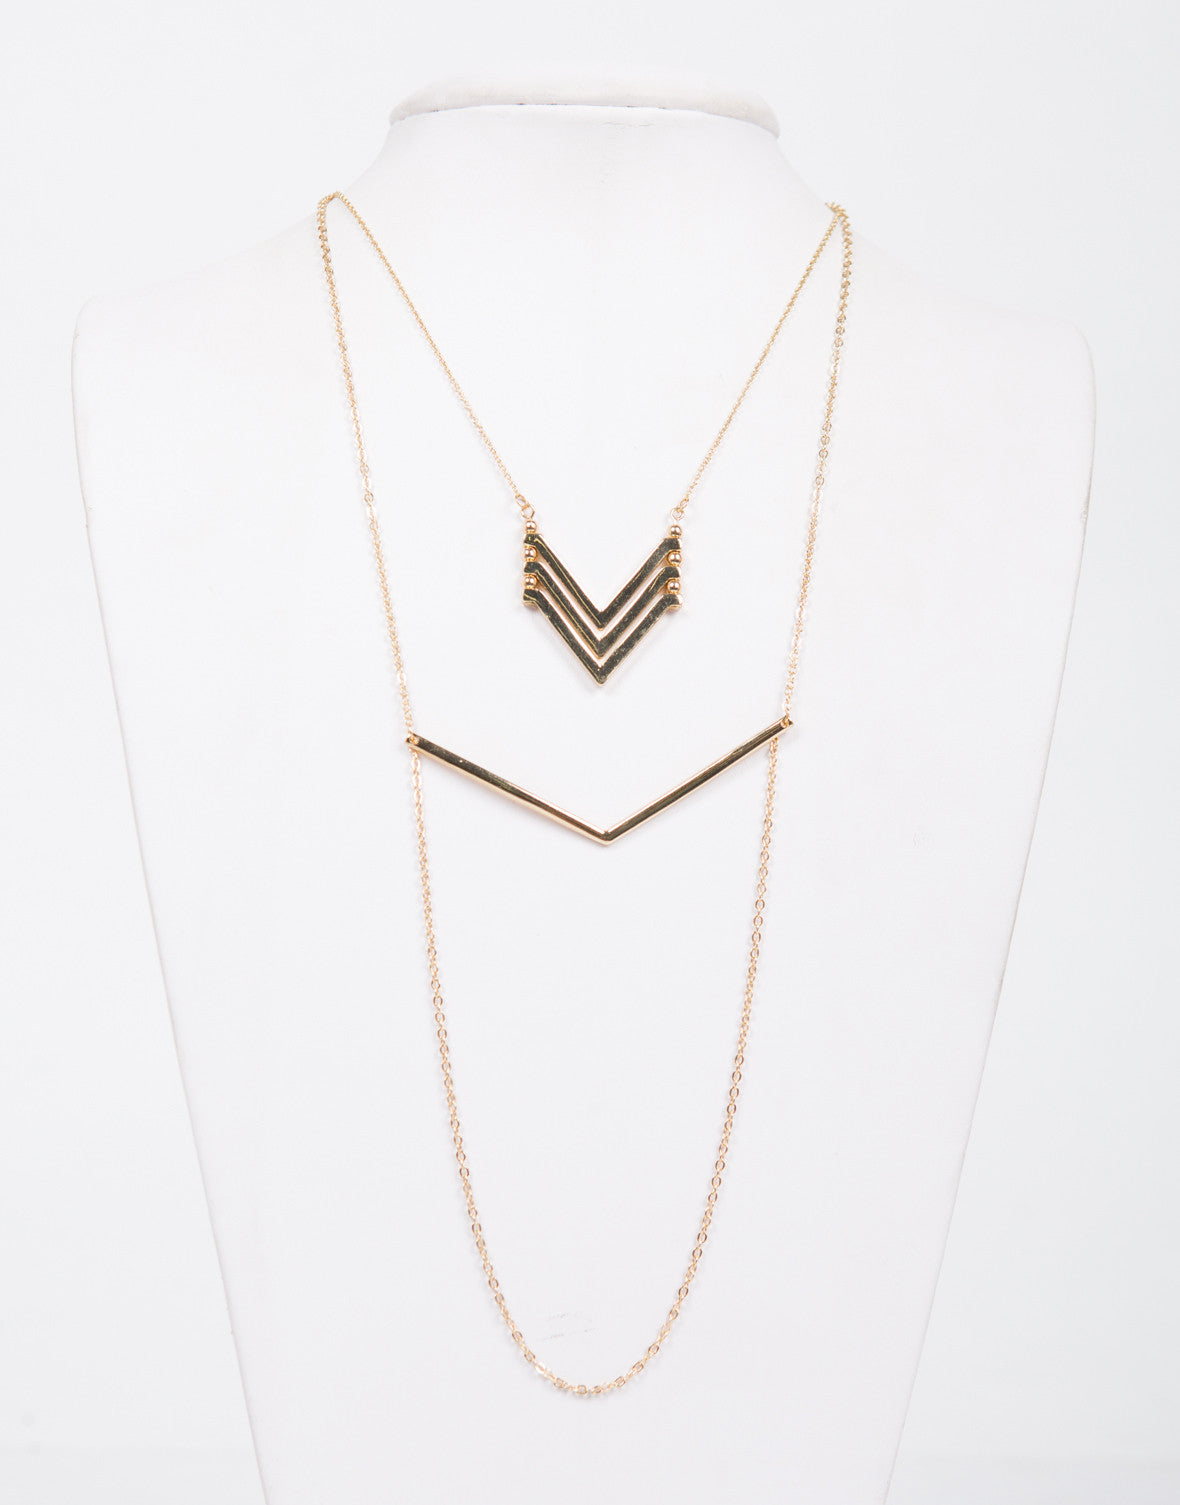 Down South Layered Necklace Set